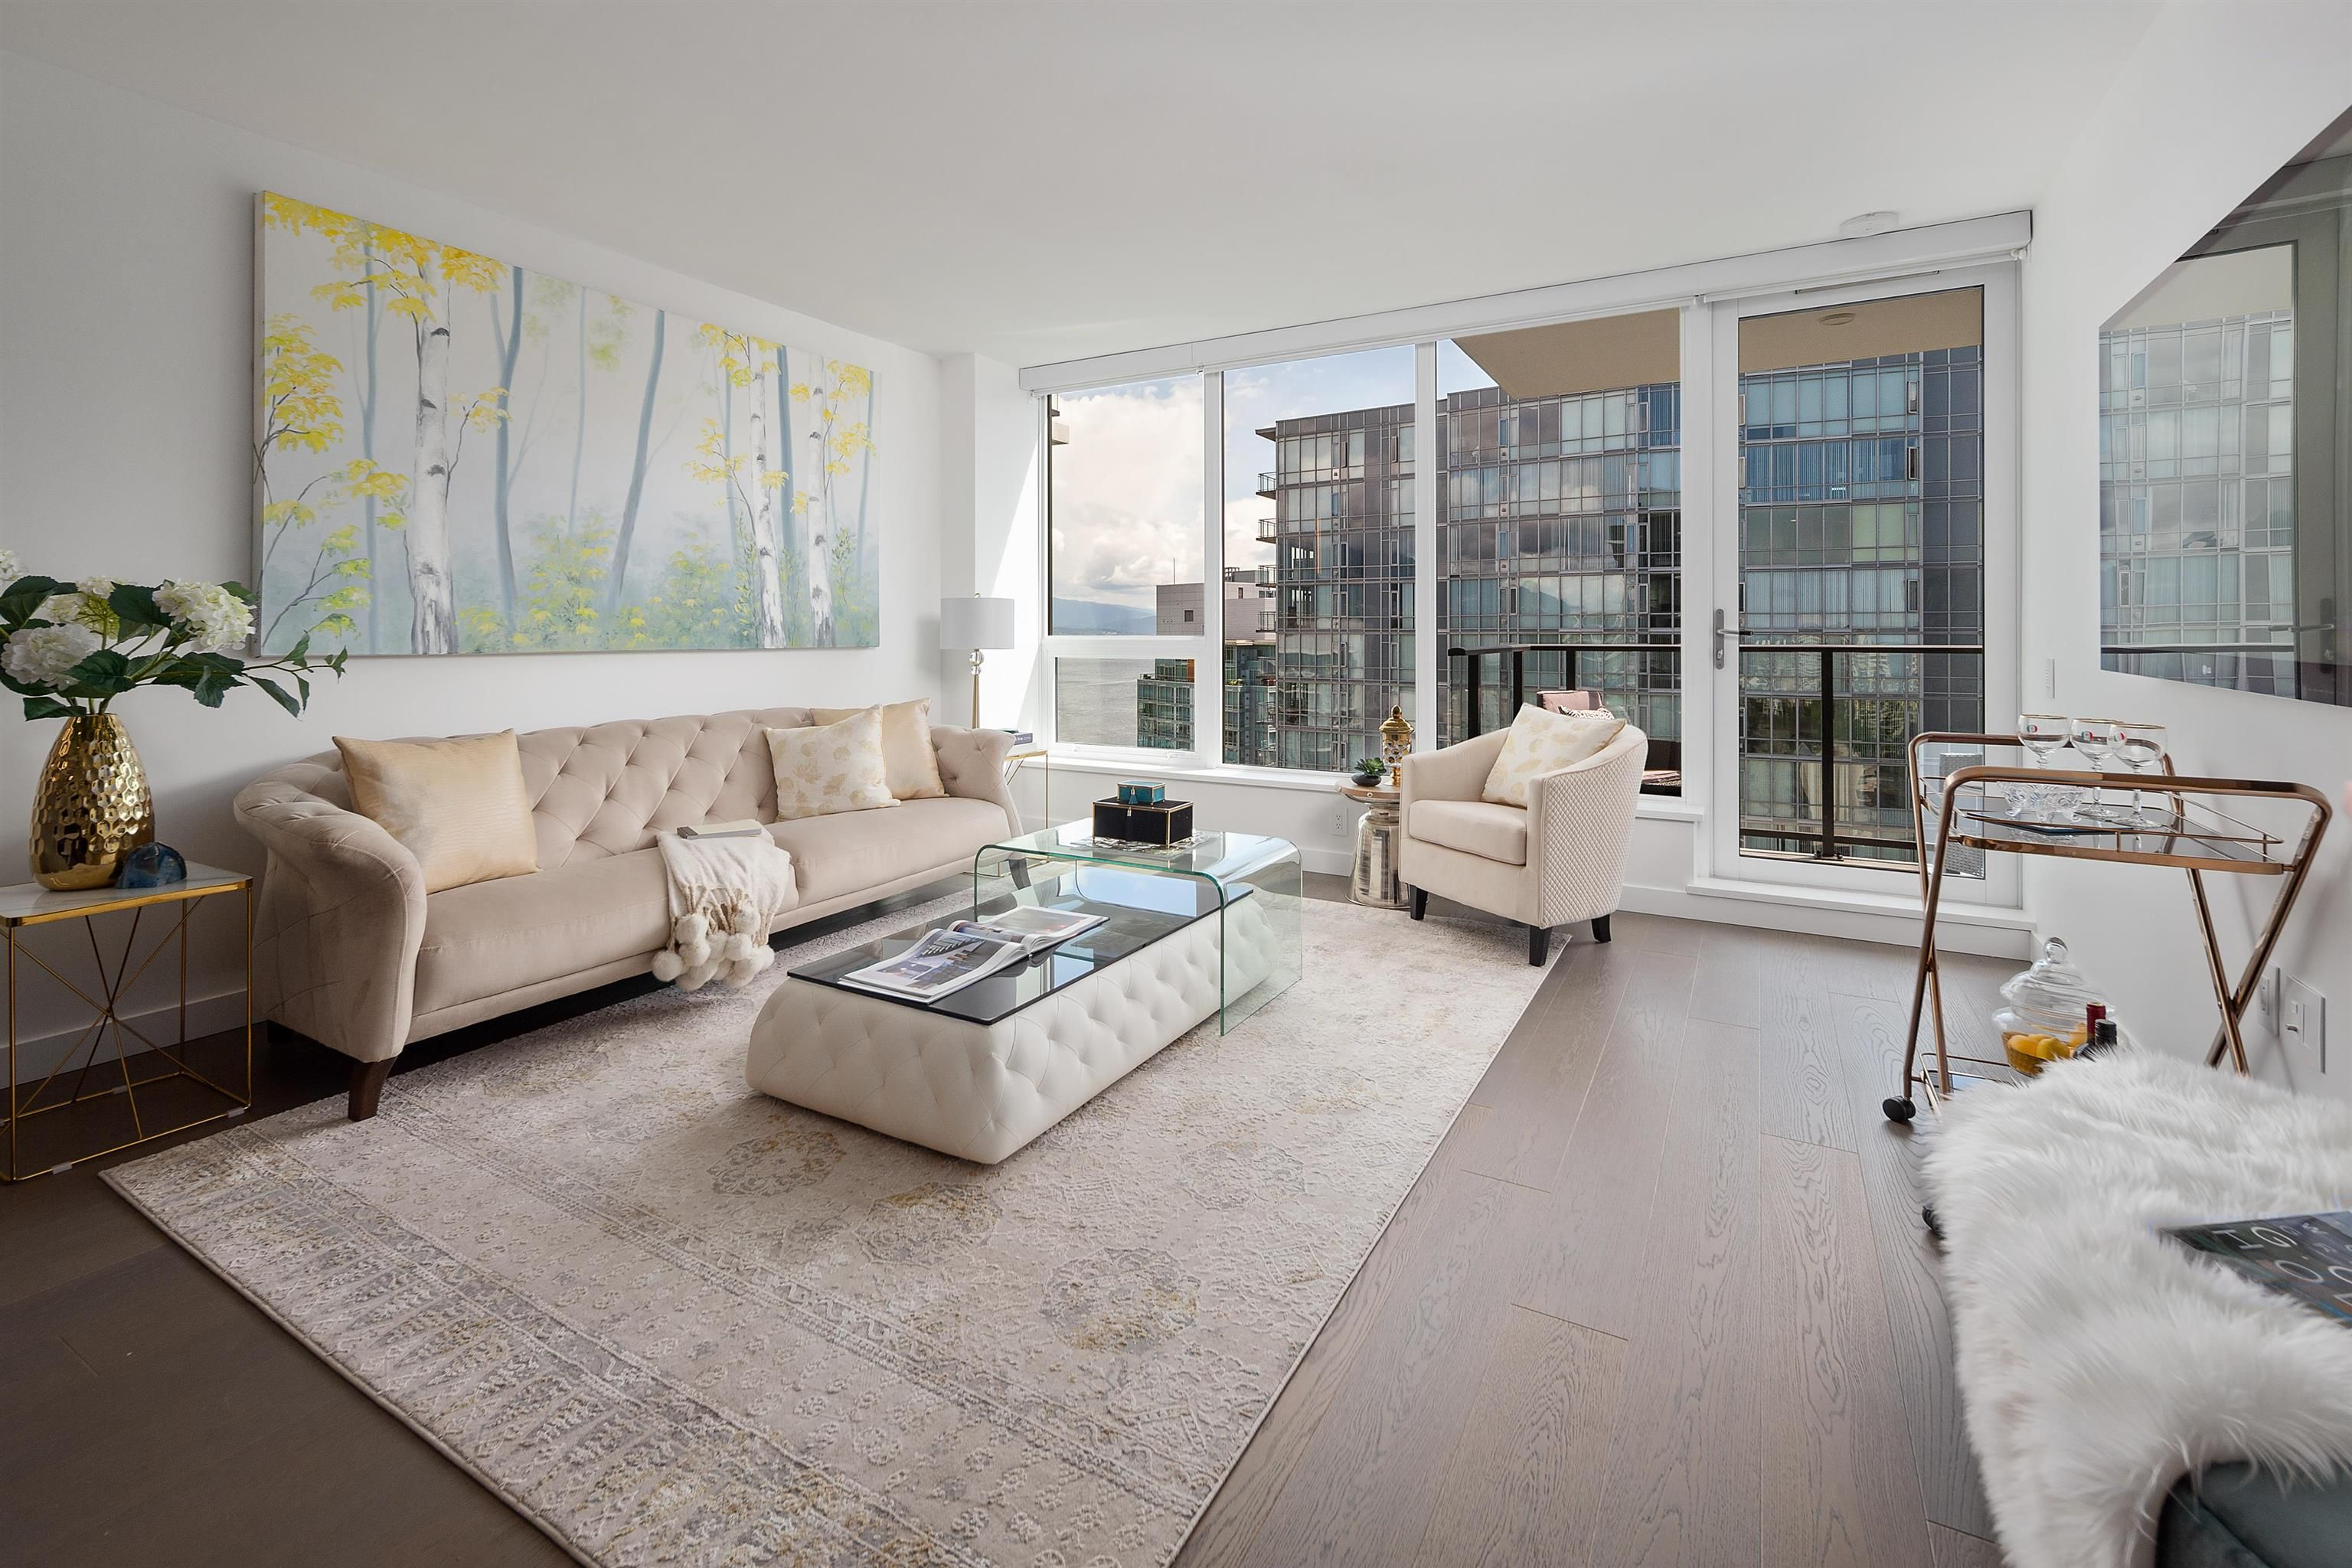 """Main Photo: 2403 620 CARDERO Street in Vancouver: Coal Harbour Condo for sale in """"Cardero"""" (Vancouver West)  : MLS®# R2613755"""